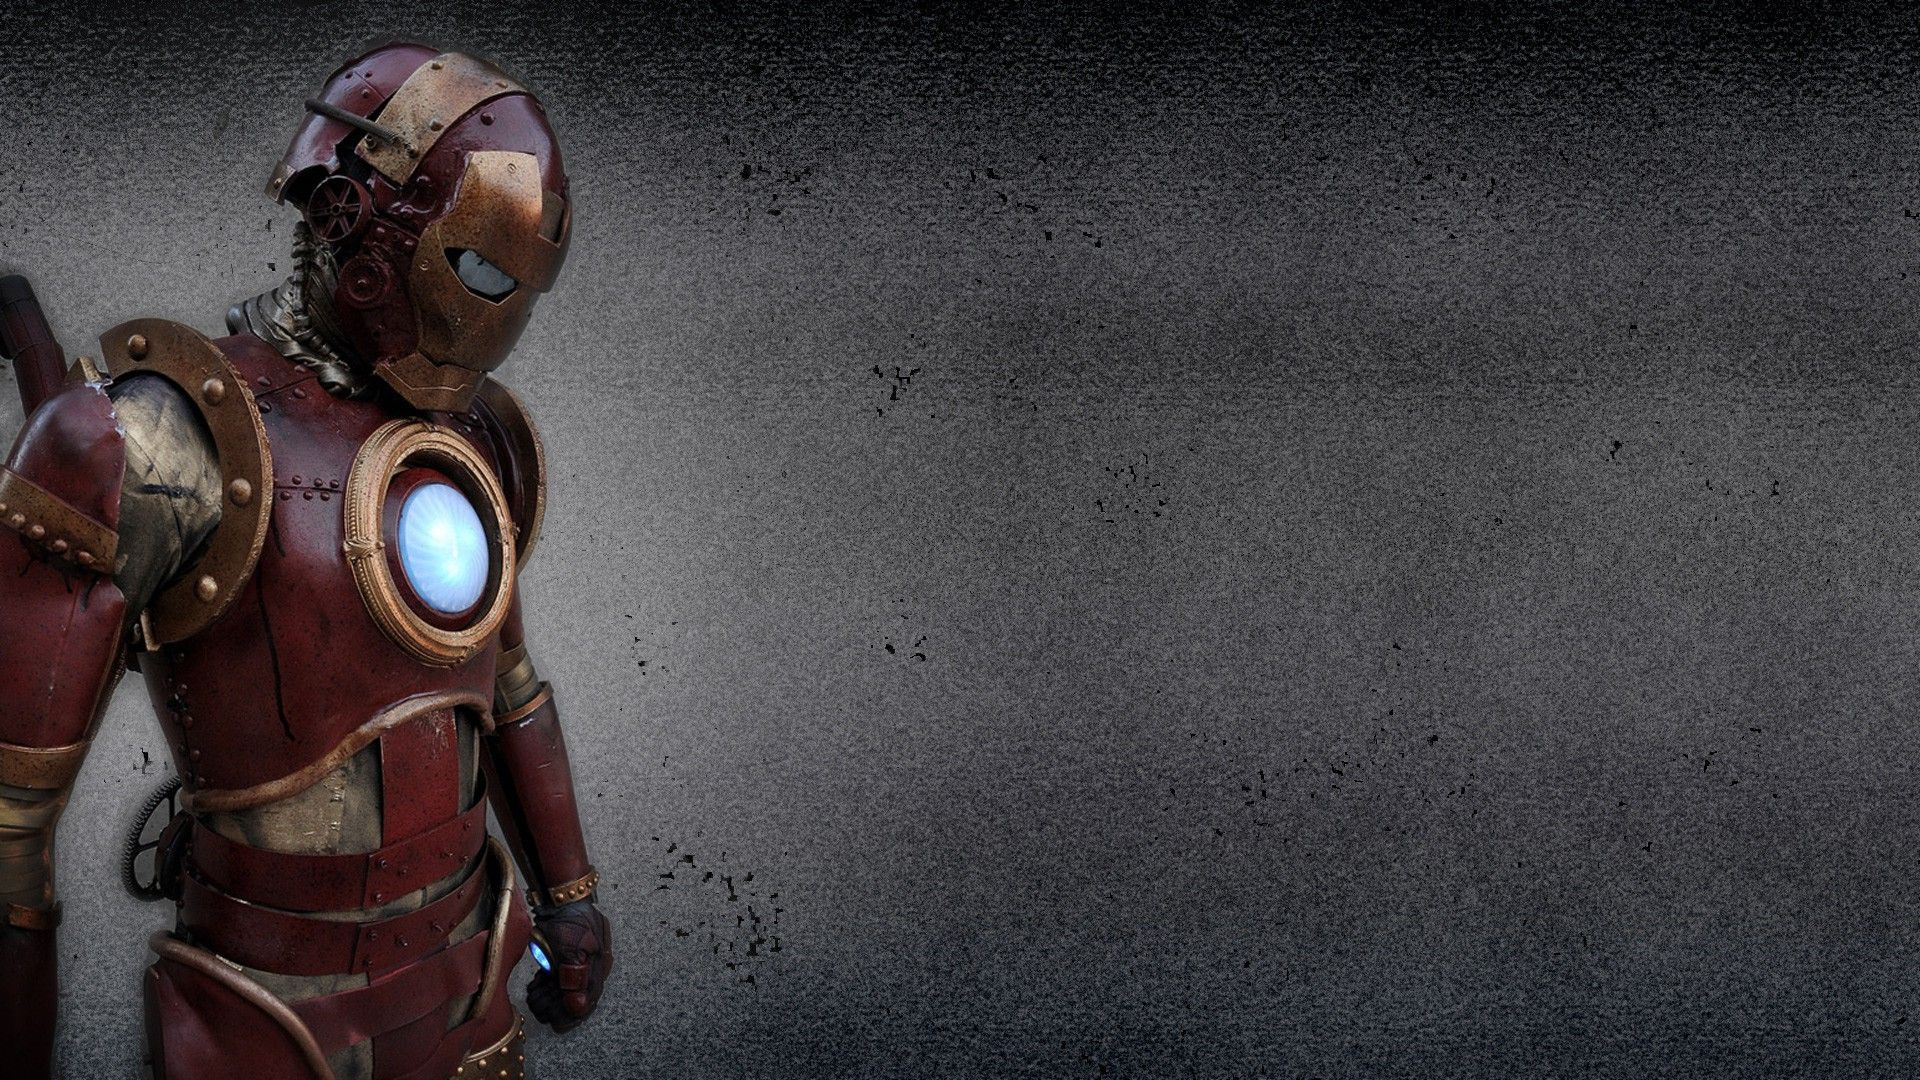 steampunk iron man wallpapers hd 399885 steampunk iron man 1920x1080